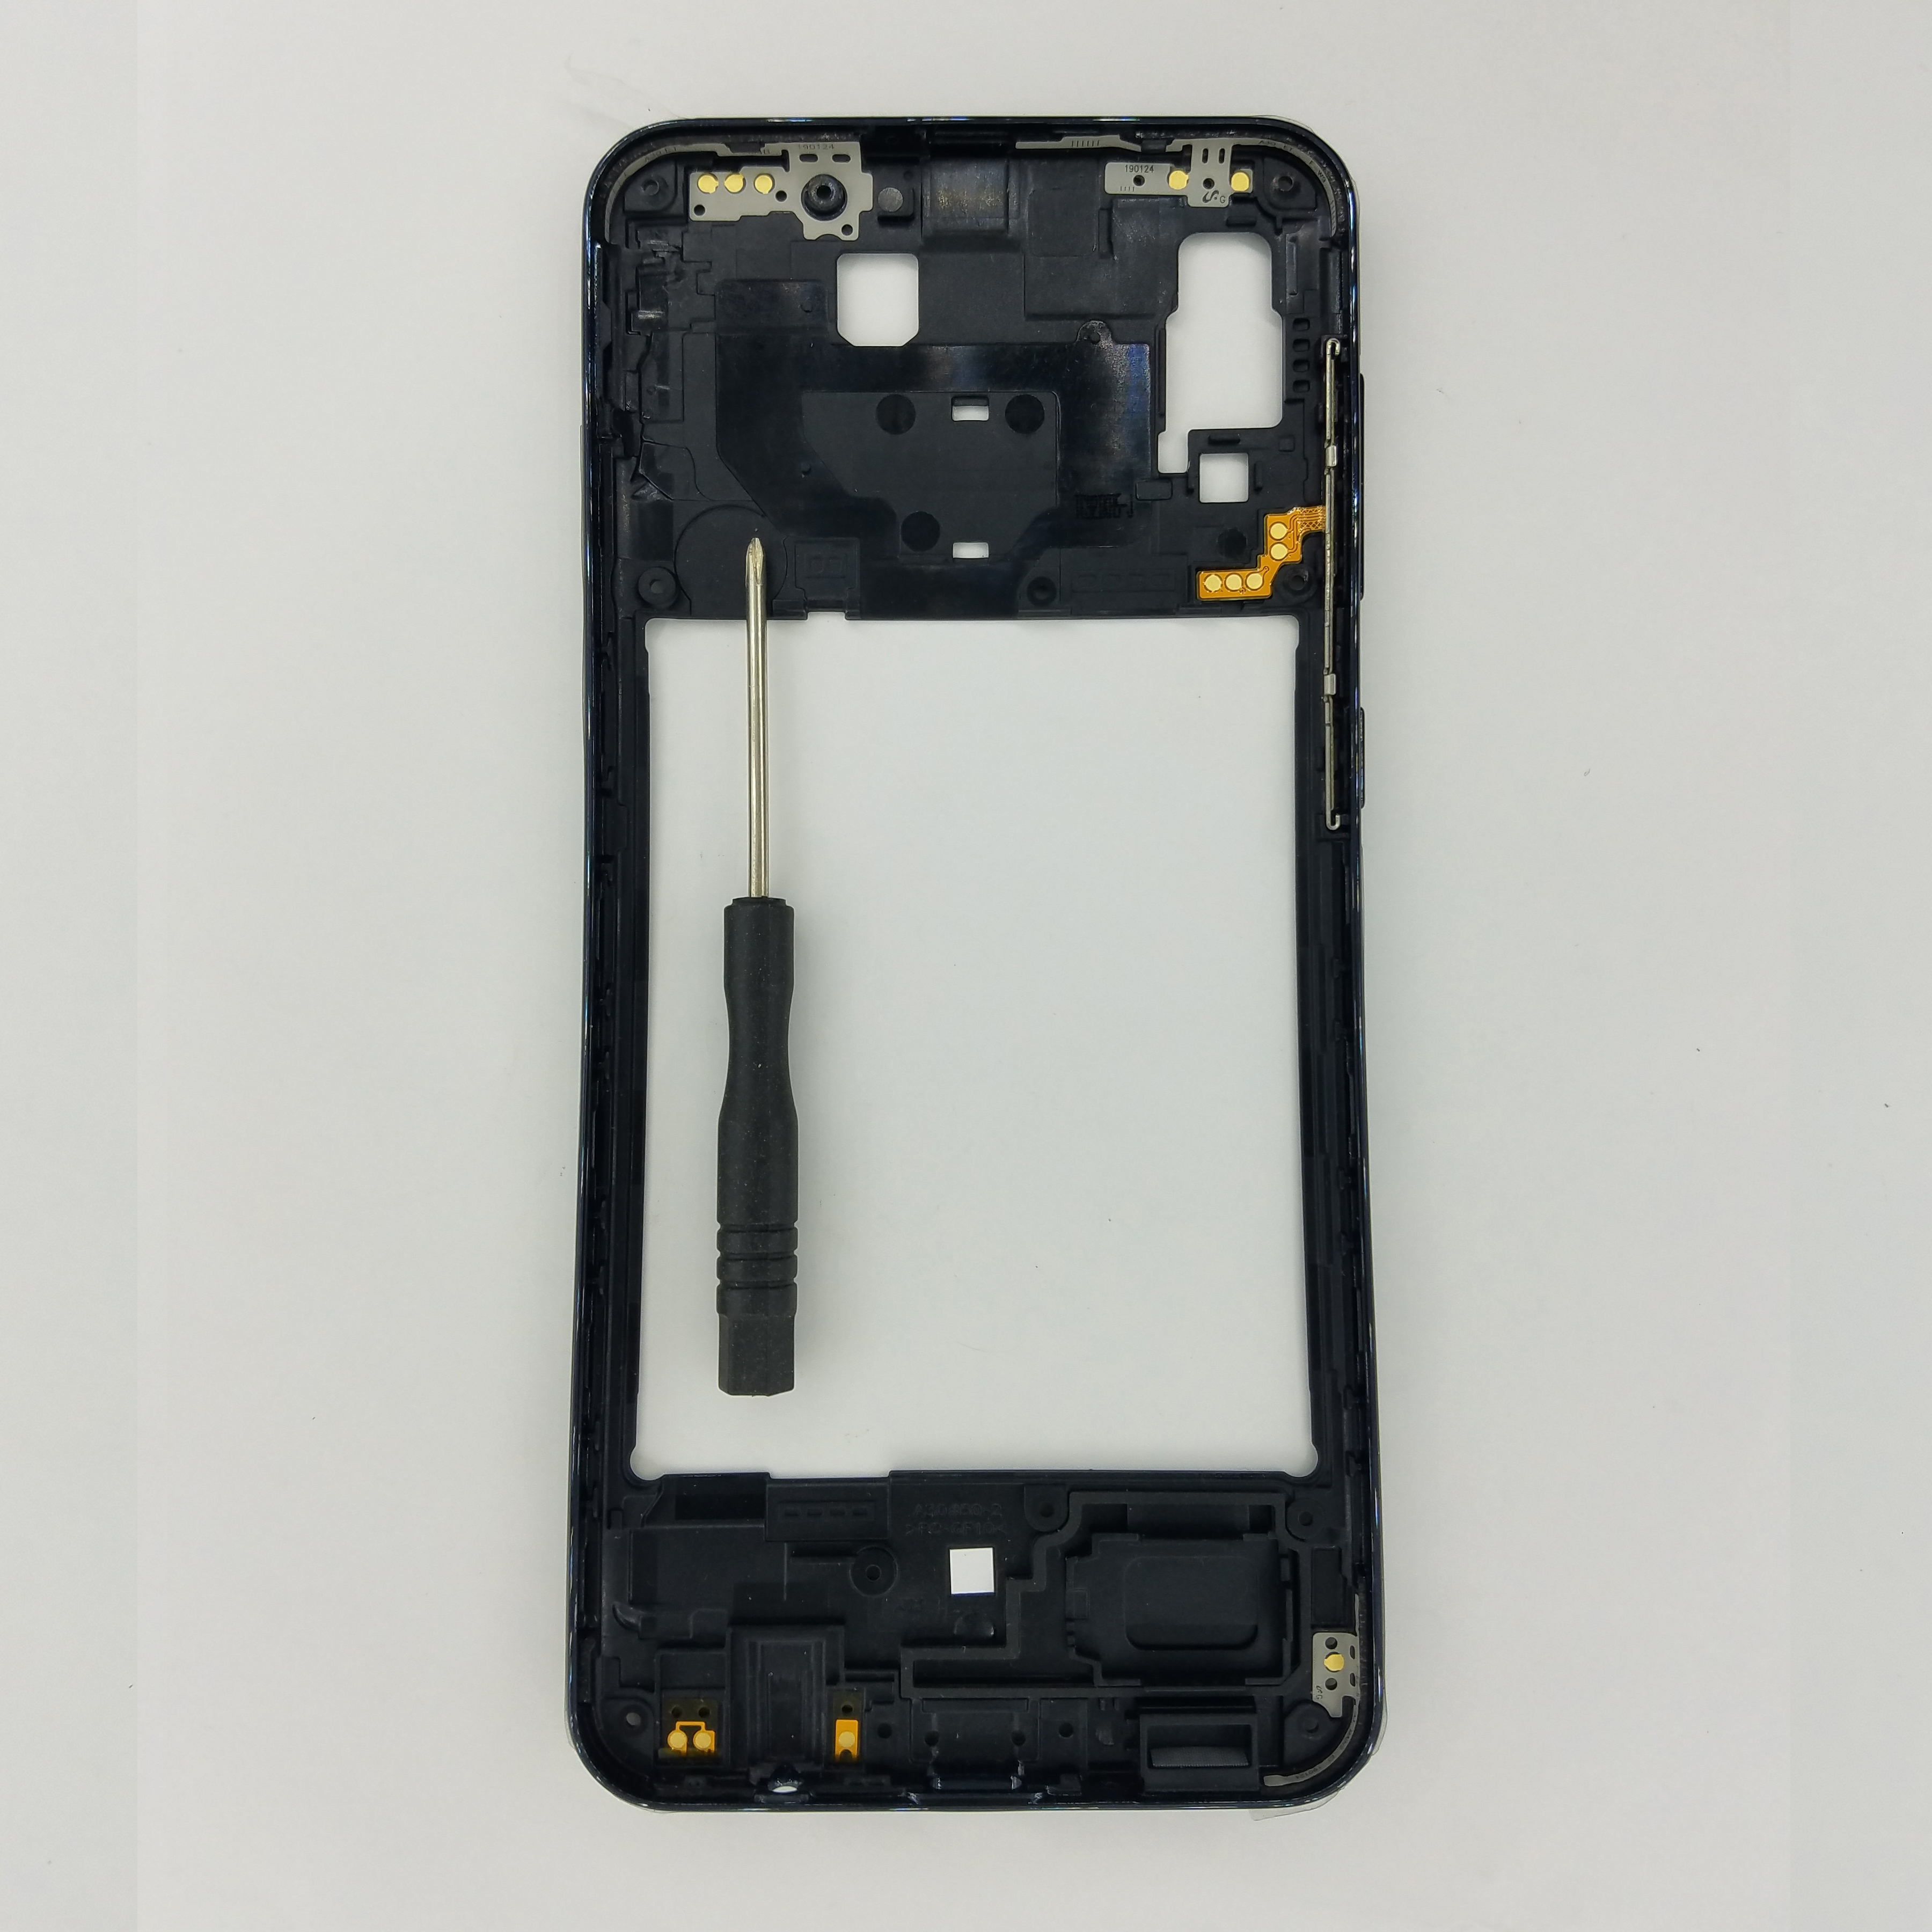 For Samsung Galaxy A30 A305 A305F A305FN A305G A305GN Phone New Side Housing Middle Frame Center Chassis With Buttons + Tools